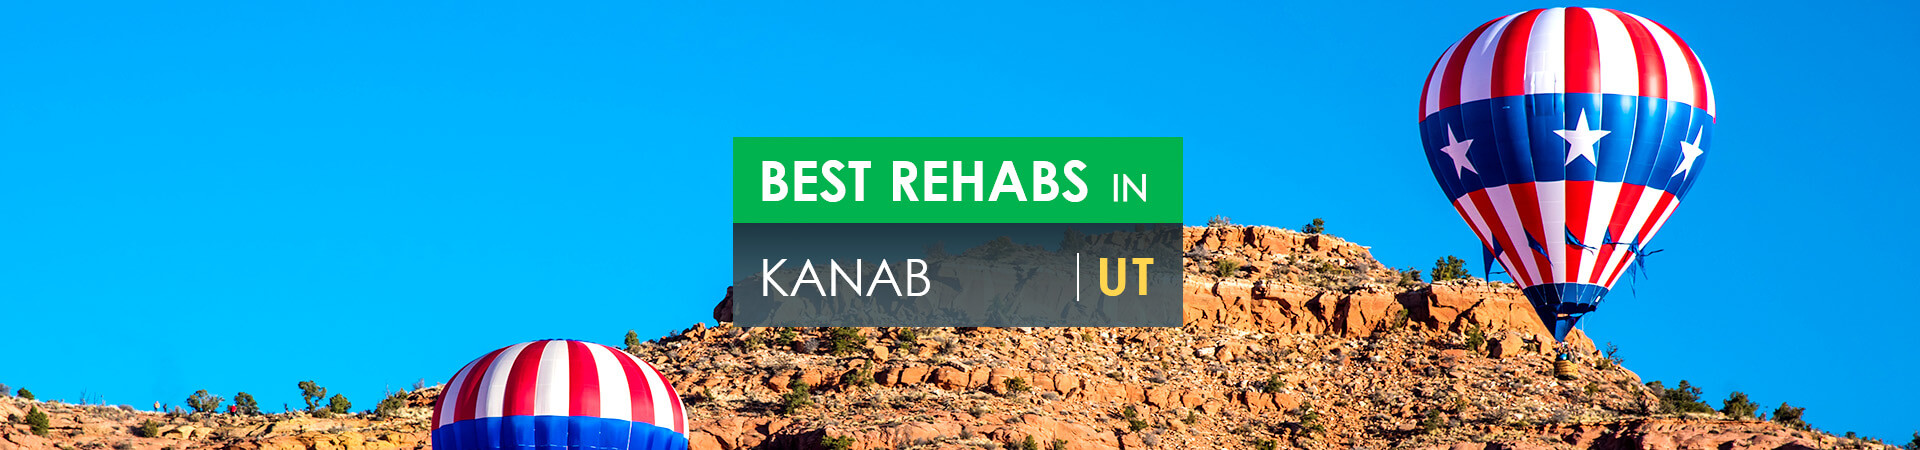 Best rehabs in Kanab, UT